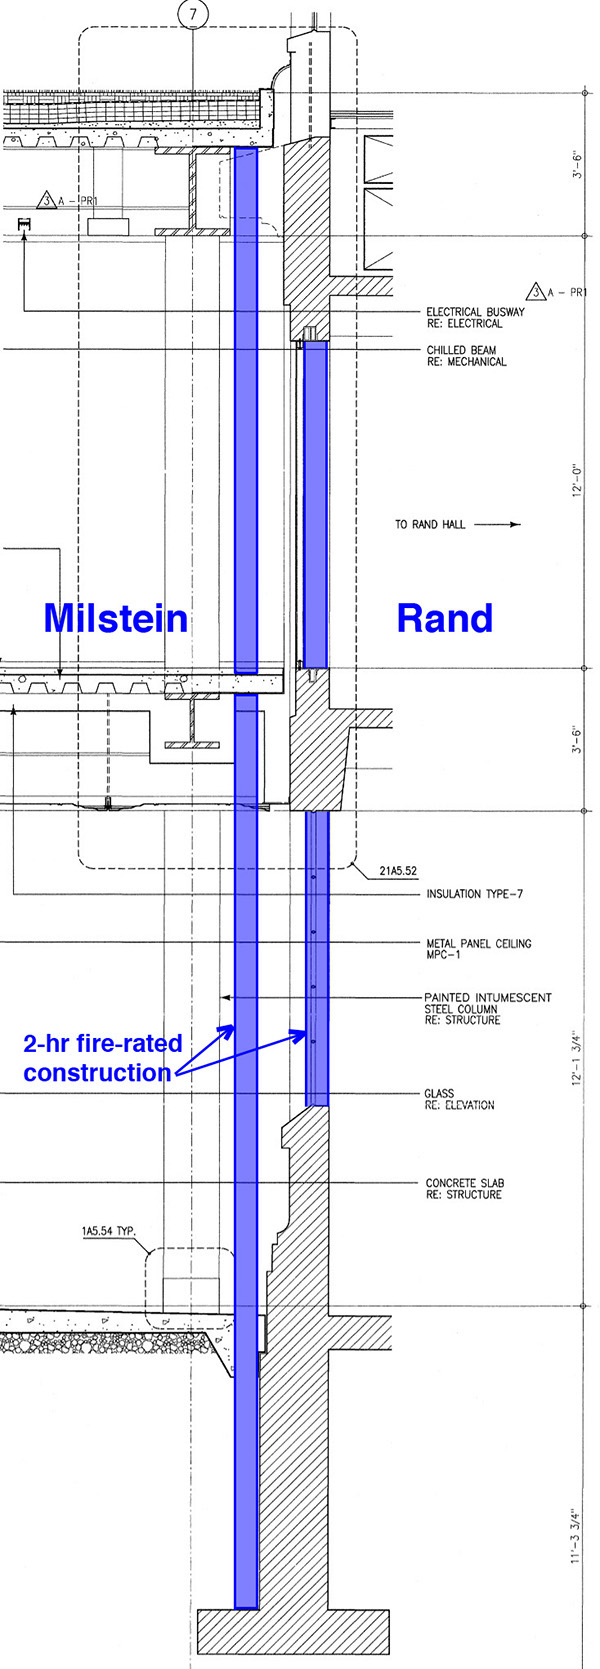 How To Build A Double Fire Wall Between Rand And Milstein Halls Schematic Section Showing 3 Hr Based On 1 Sheet A5 12 Hall Working Drawings No Structural Modifications Either